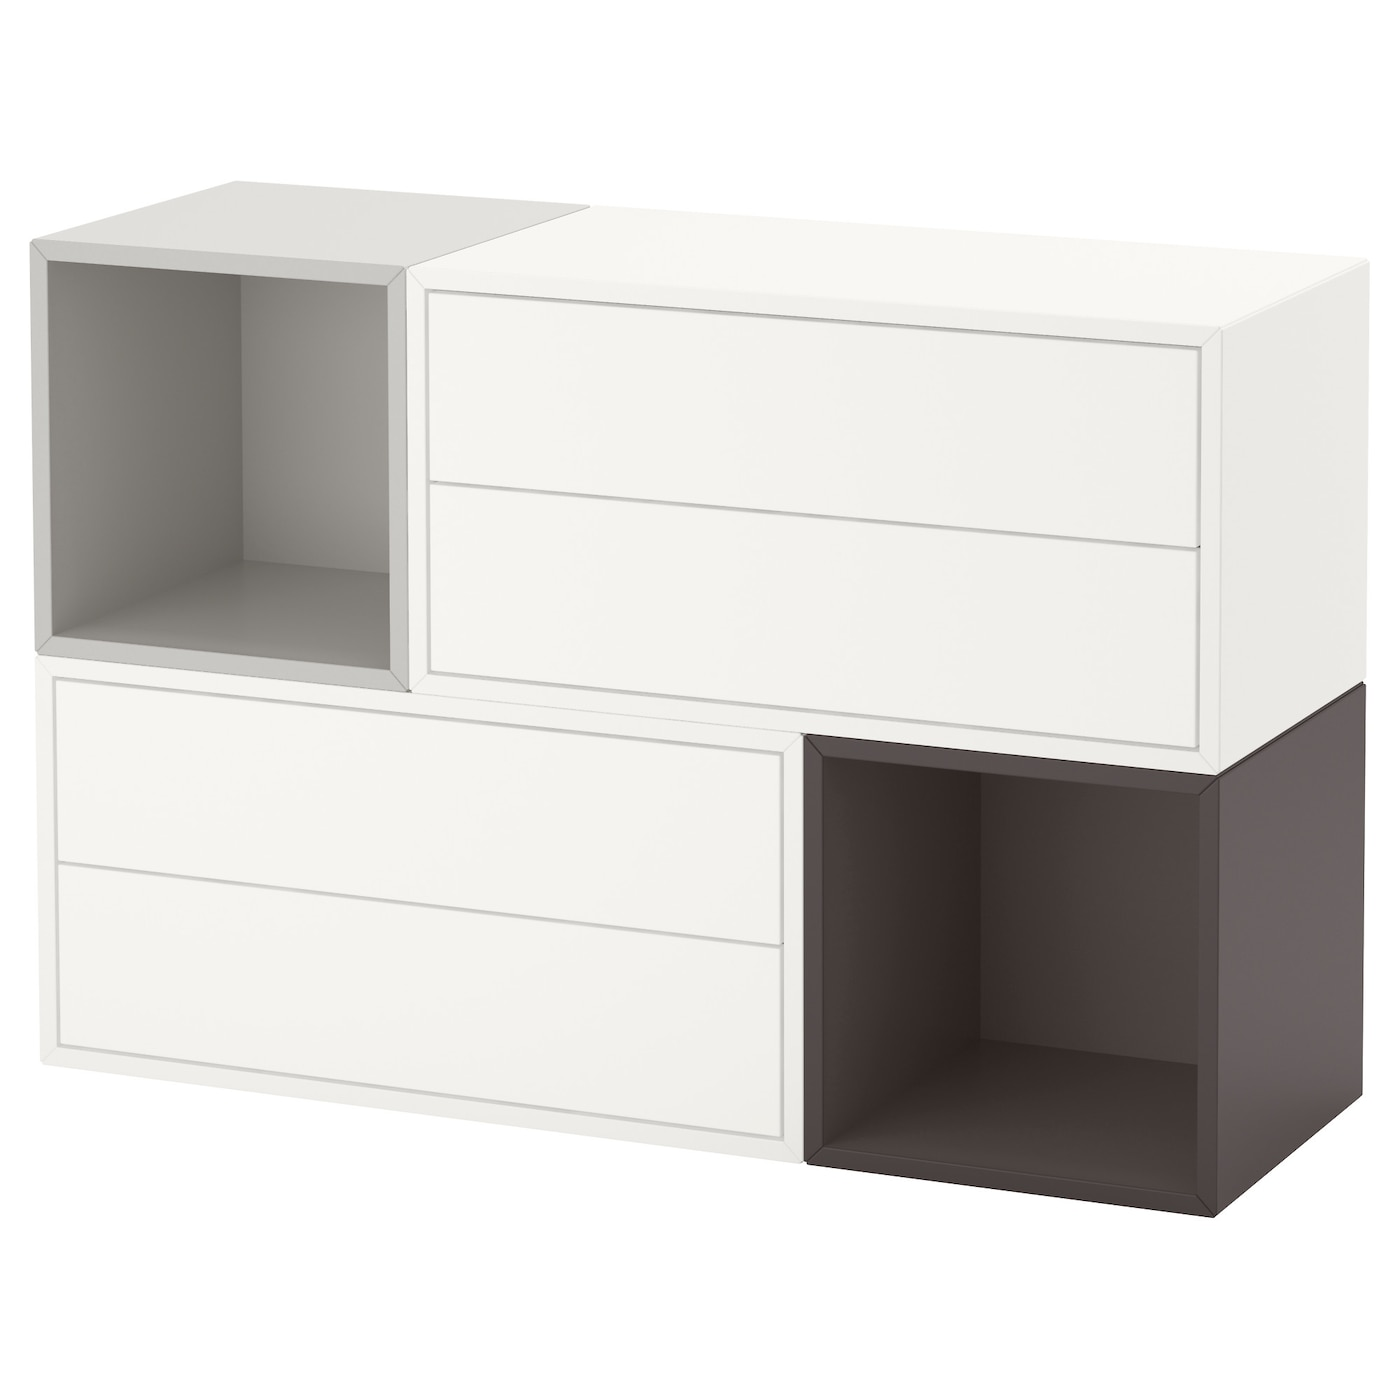 eket wall mounted cabinet combination white light grey dark grey 105 x 35 x 70 cm ikea. Black Bedroom Furniture Sets. Home Design Ideas